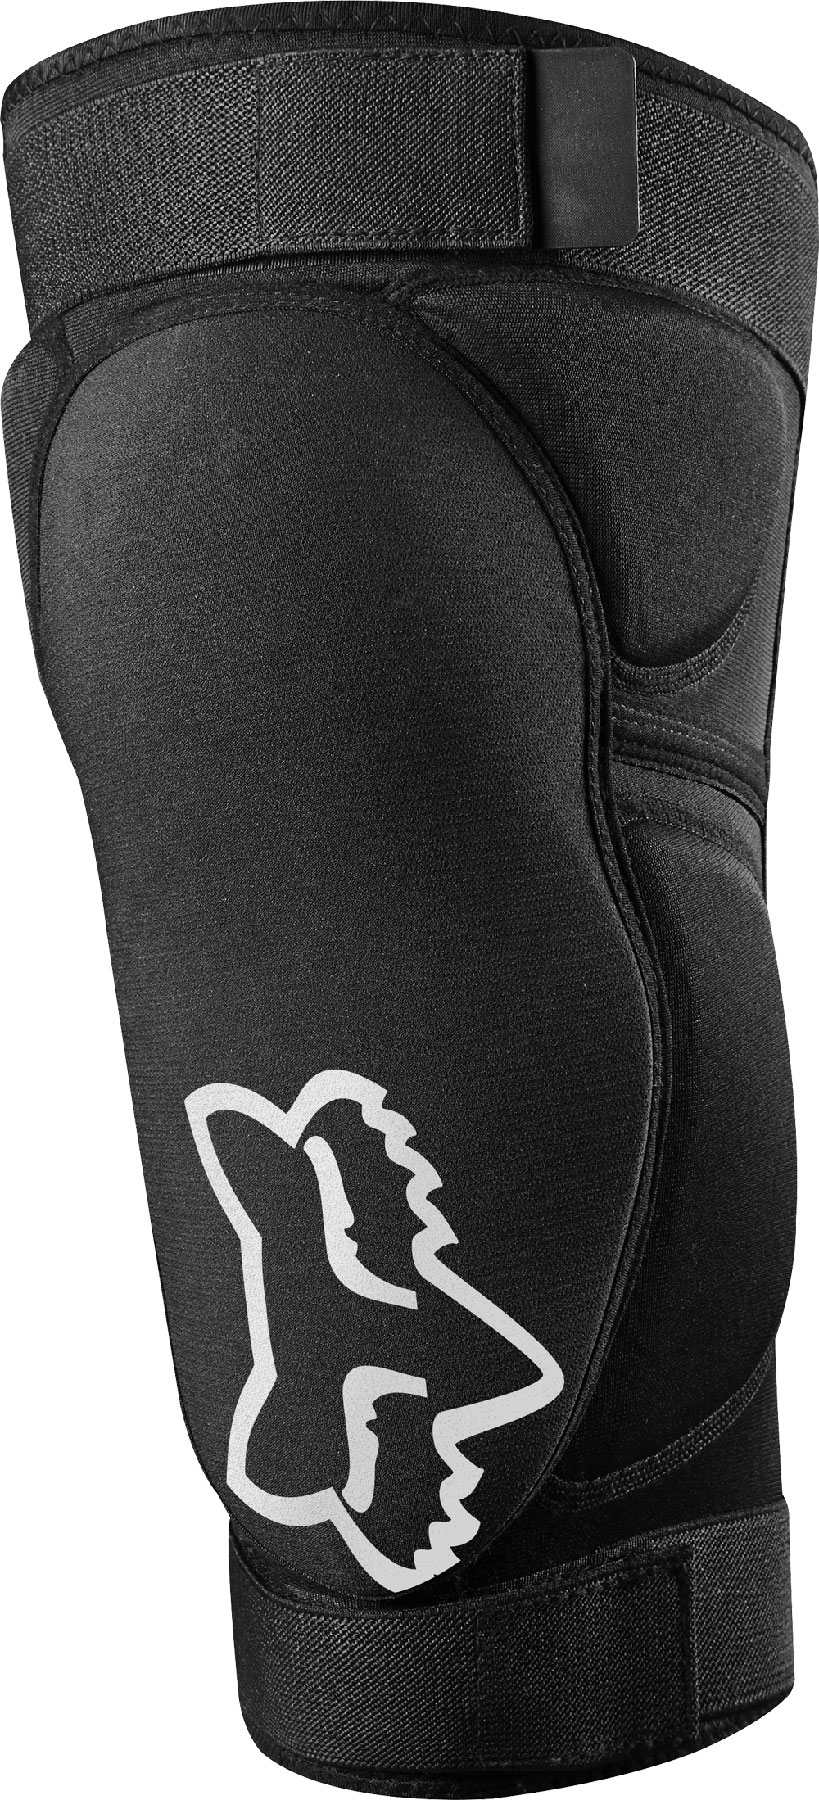 Fox Racing Launch Pro Knee Guards | Amour